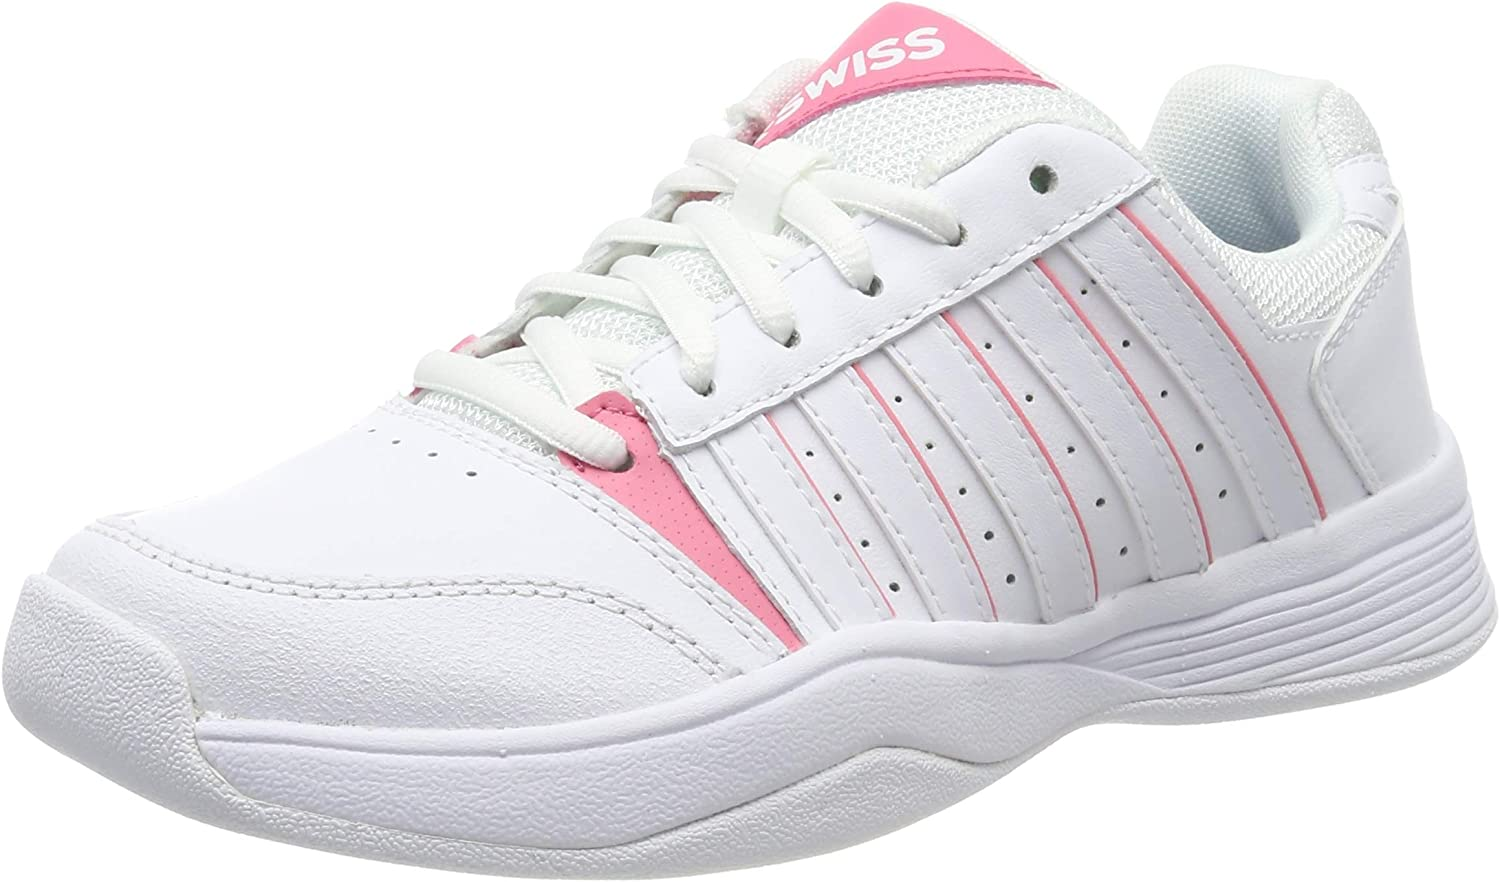 Zapatillas de Tenis para Ni/ñas K-Swiss Performance Court Smash Carpet